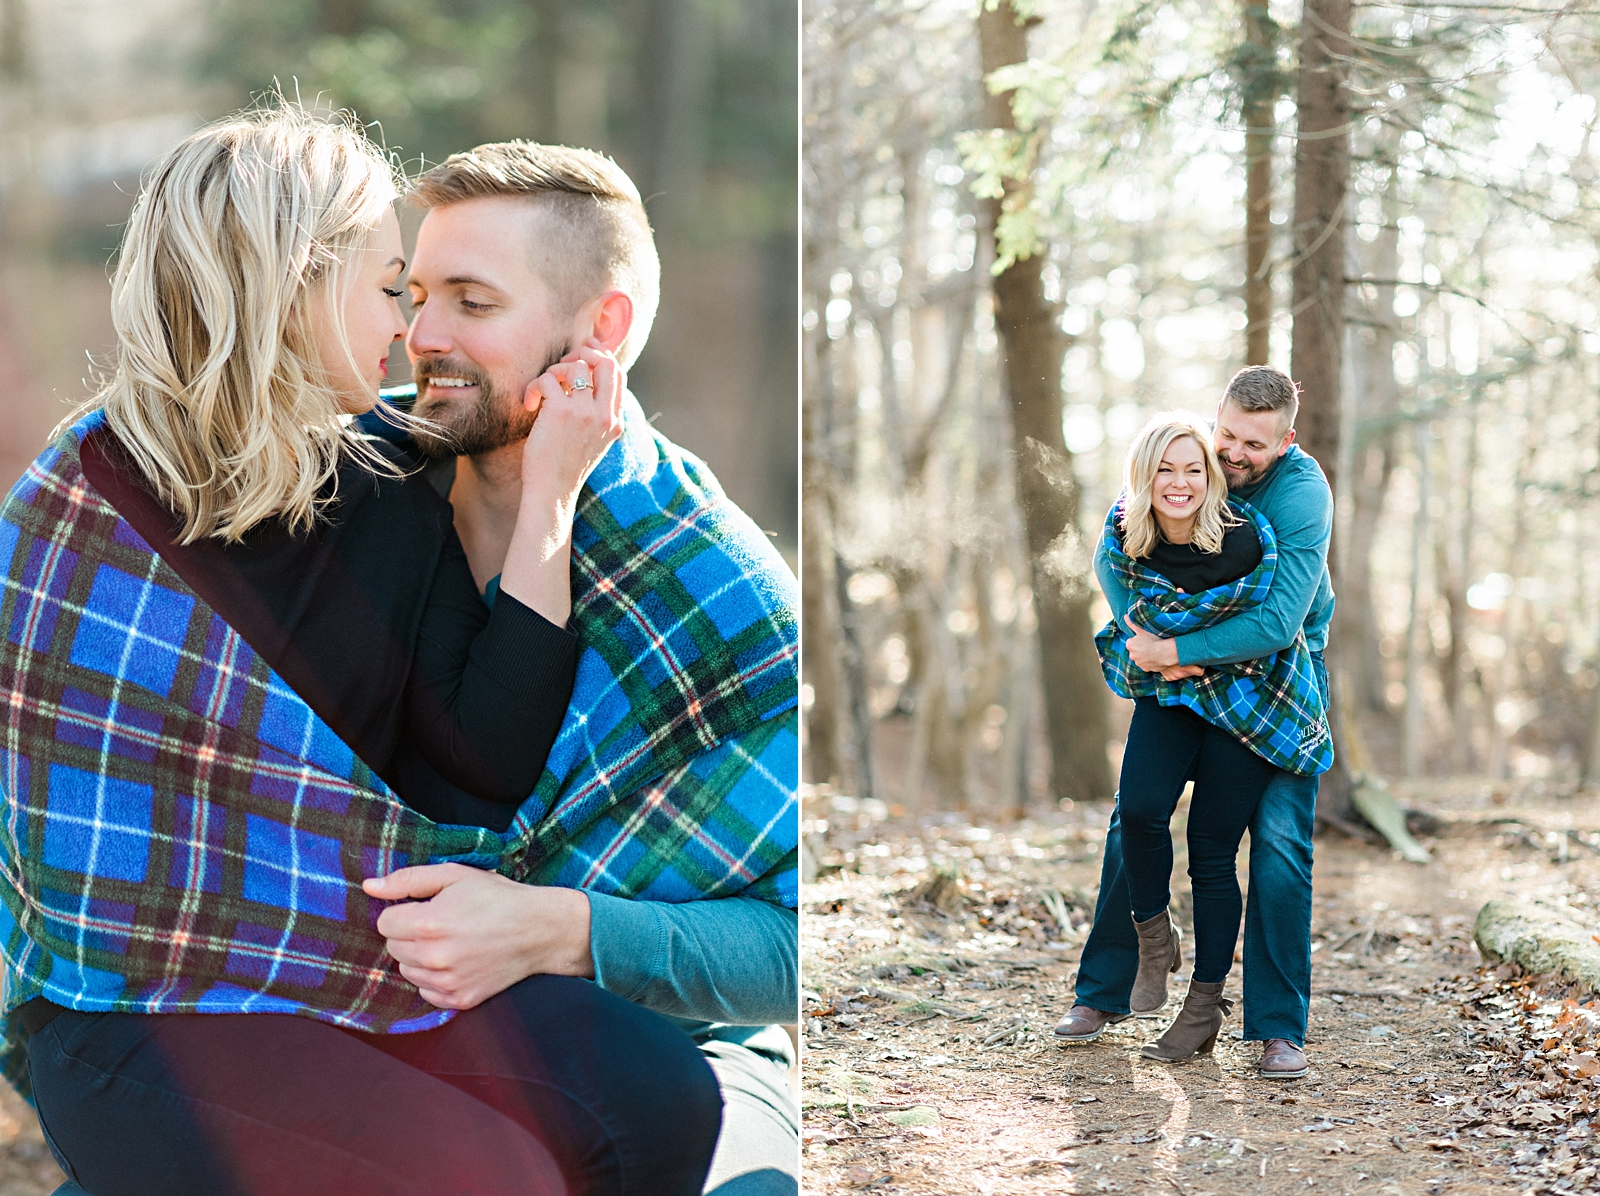 Halifax-Wedding-Photographer_Rhea&Craig_Halifax Engagement Photography_012.jpg